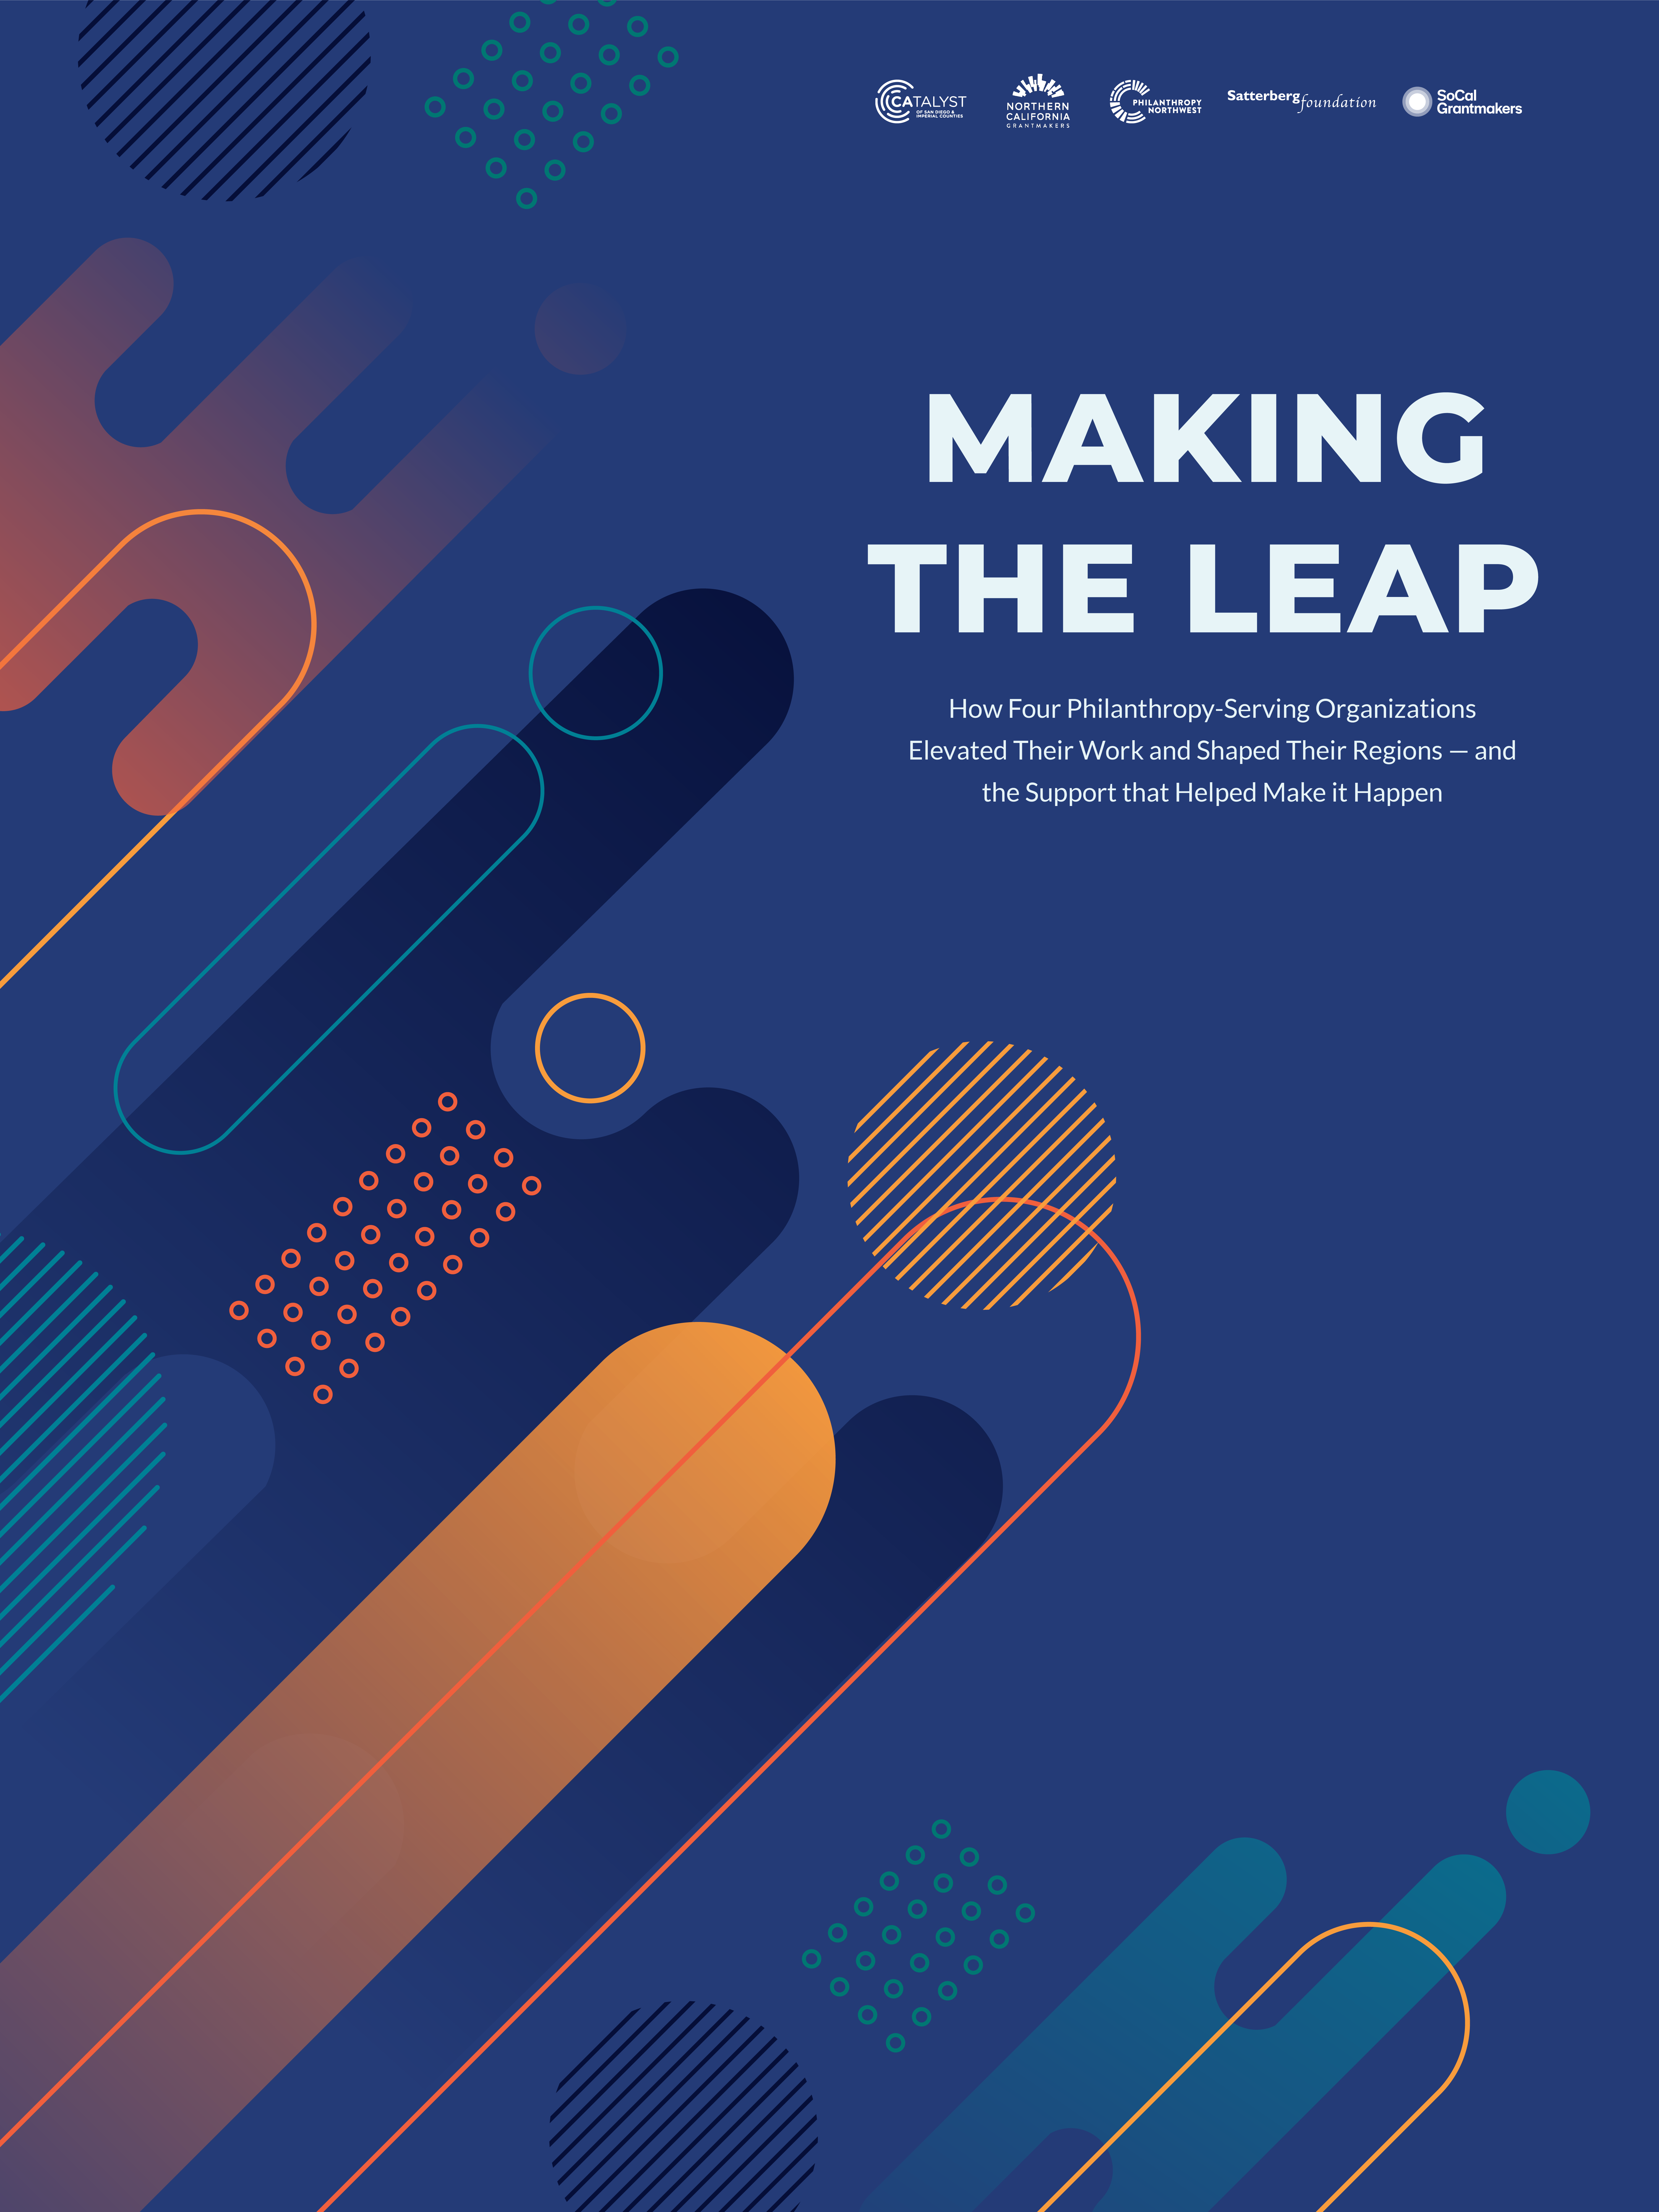 Cover design + title: Making the Leap. How Four Philanthropy-Serving Organizations Elevated Their Work and Shaped Their Regions -- and the Support that Helped Make it Happen.